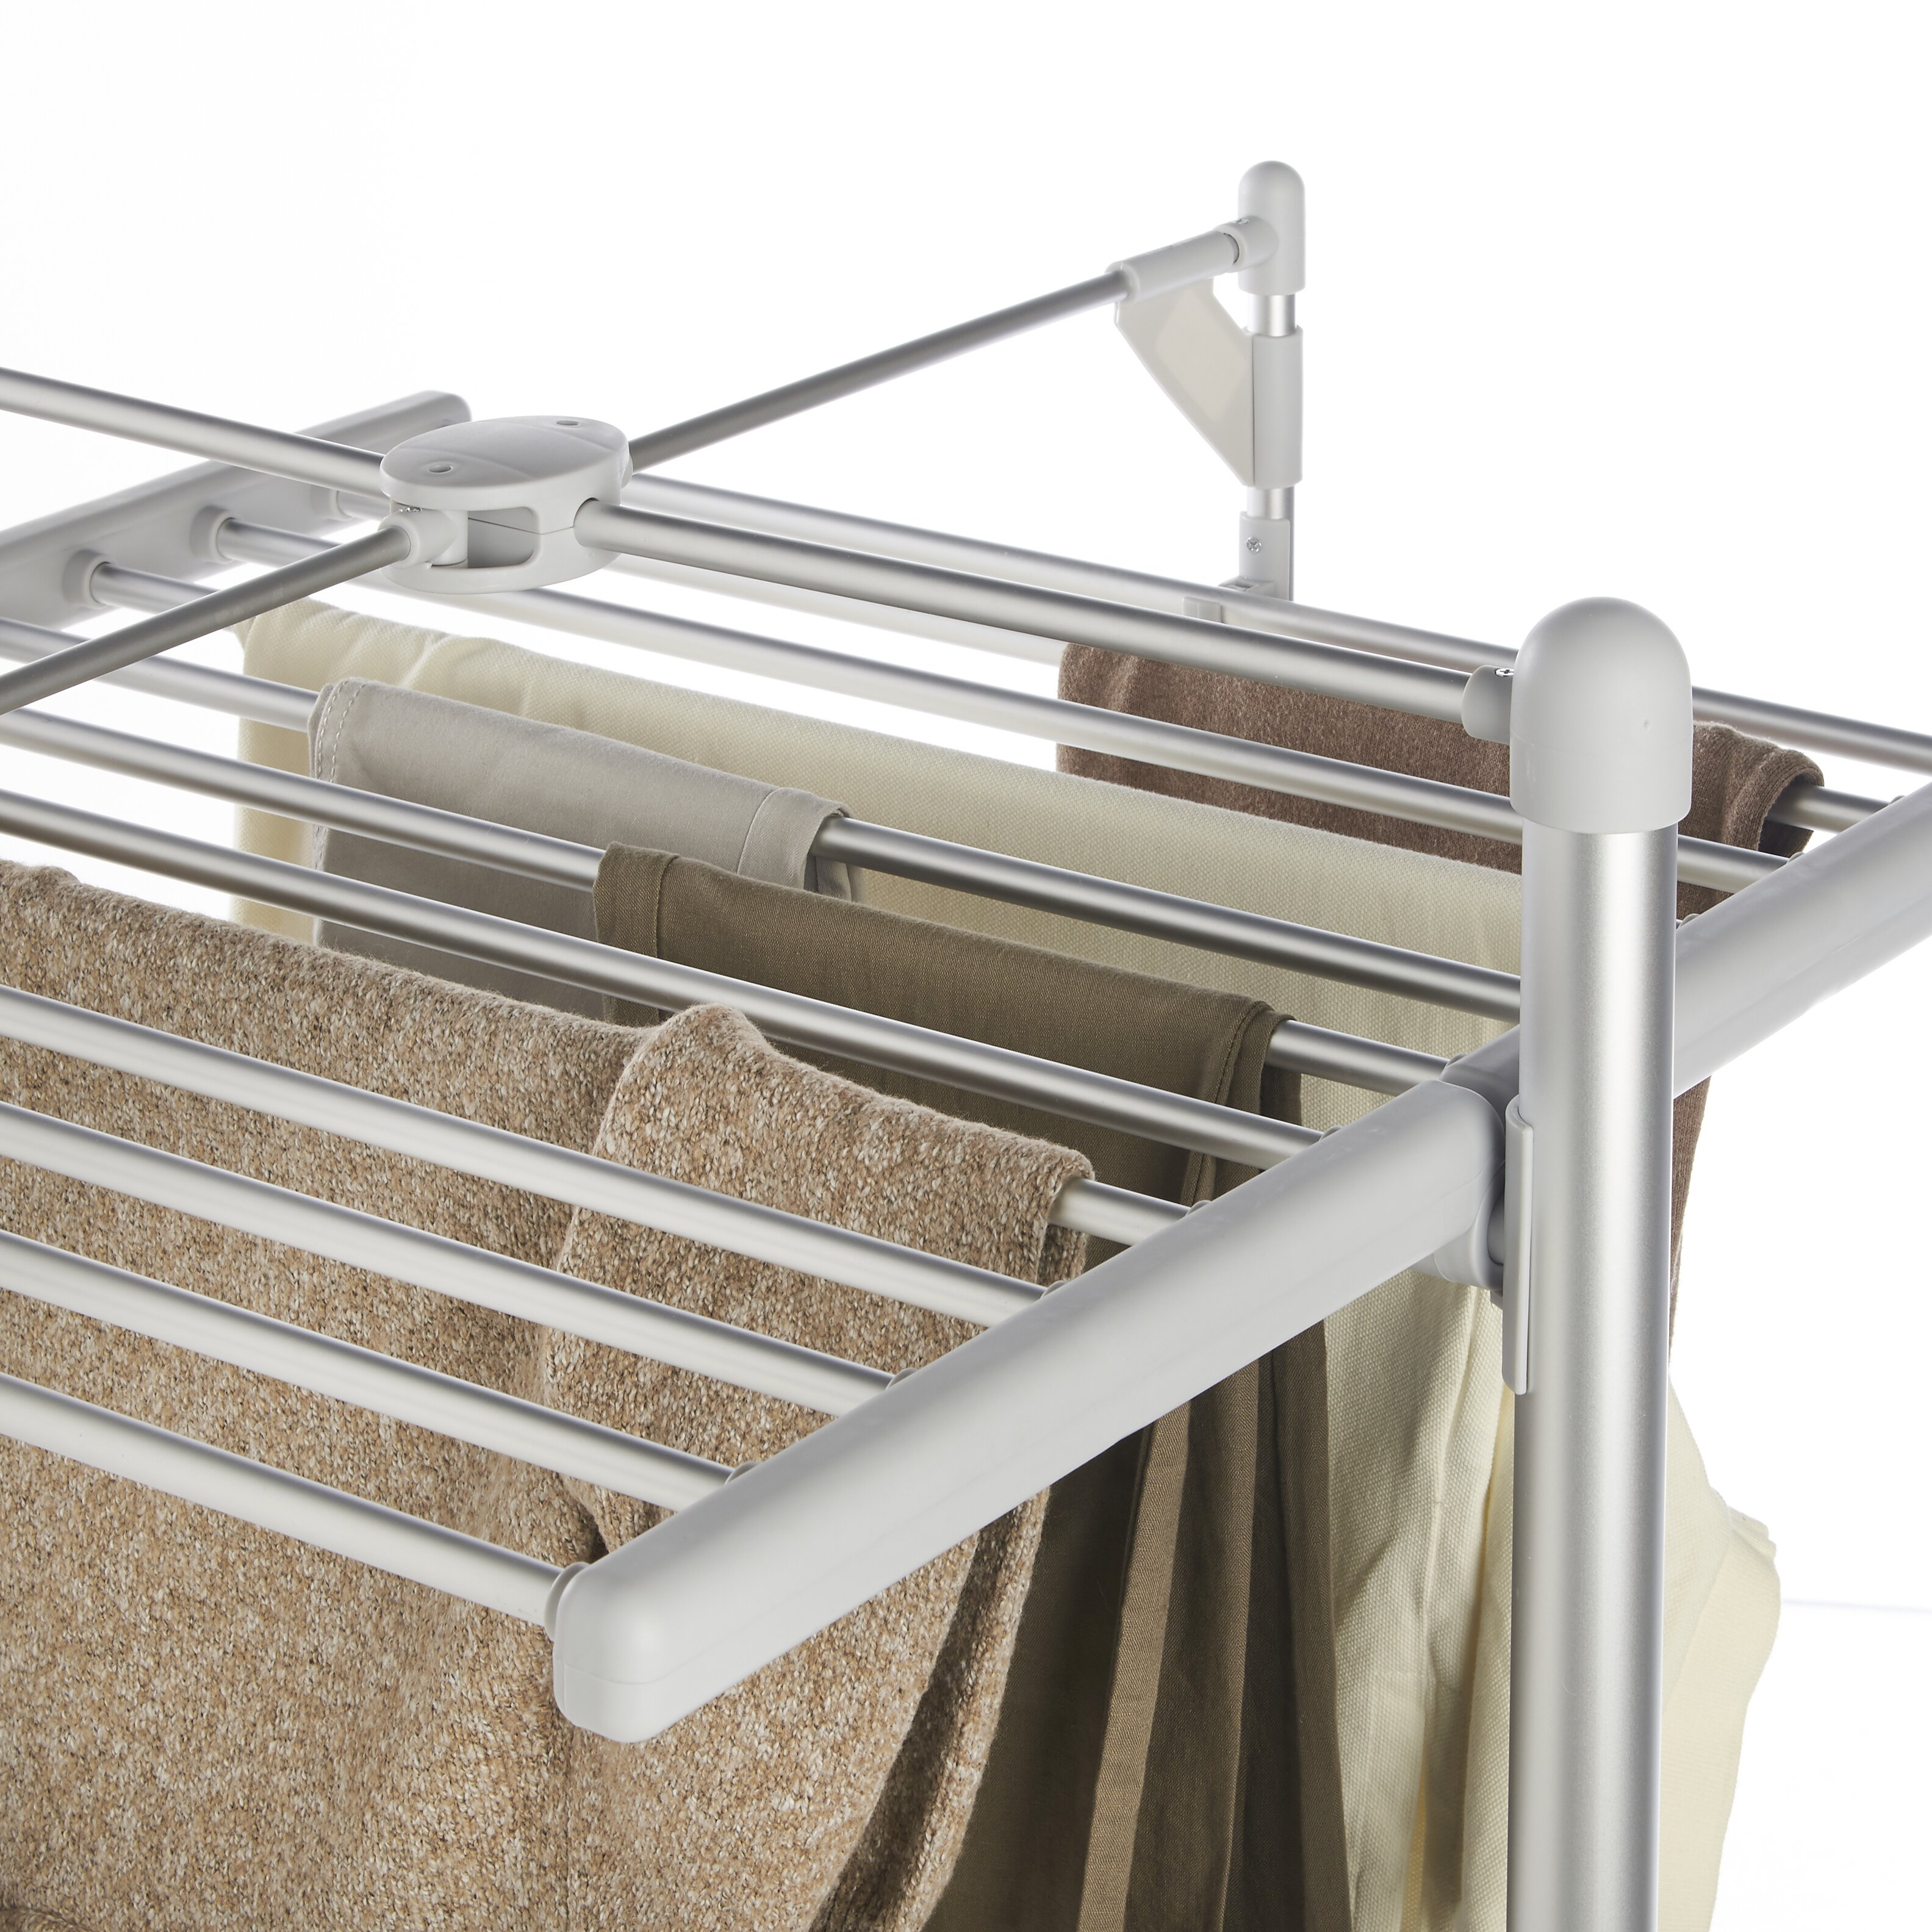 VonHaus Heated Clothes Drying Rack amp Reviews Wayfair : VonHaus Heated Clothes Drying Rack Foldable 3 Tier Indoor Electric Laundry Airer 07 519US from www.wayfair.com size 3167 x 3167 jpeg 1795kB